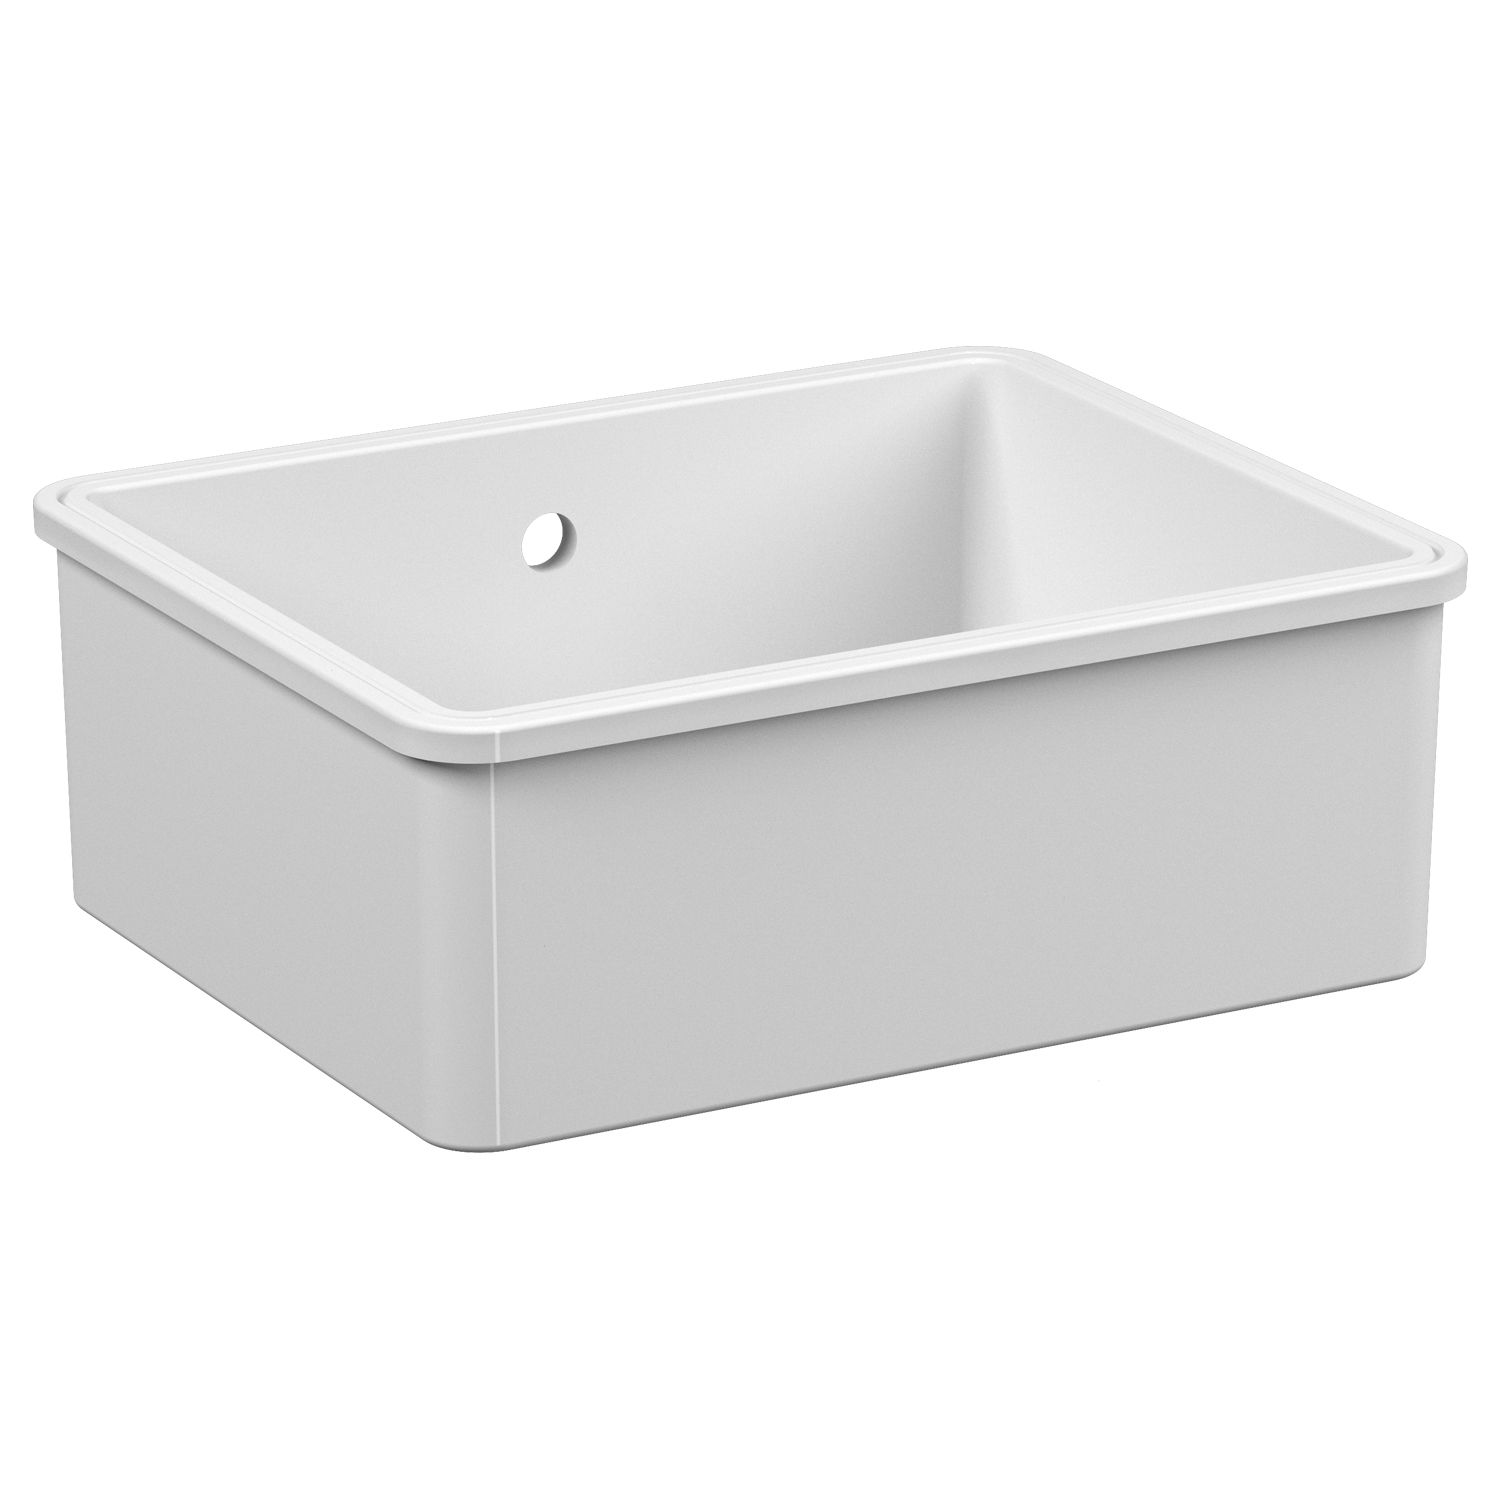 Reginox MATARO Single Bowl Ceramic Sink - Sinks-Taps.com